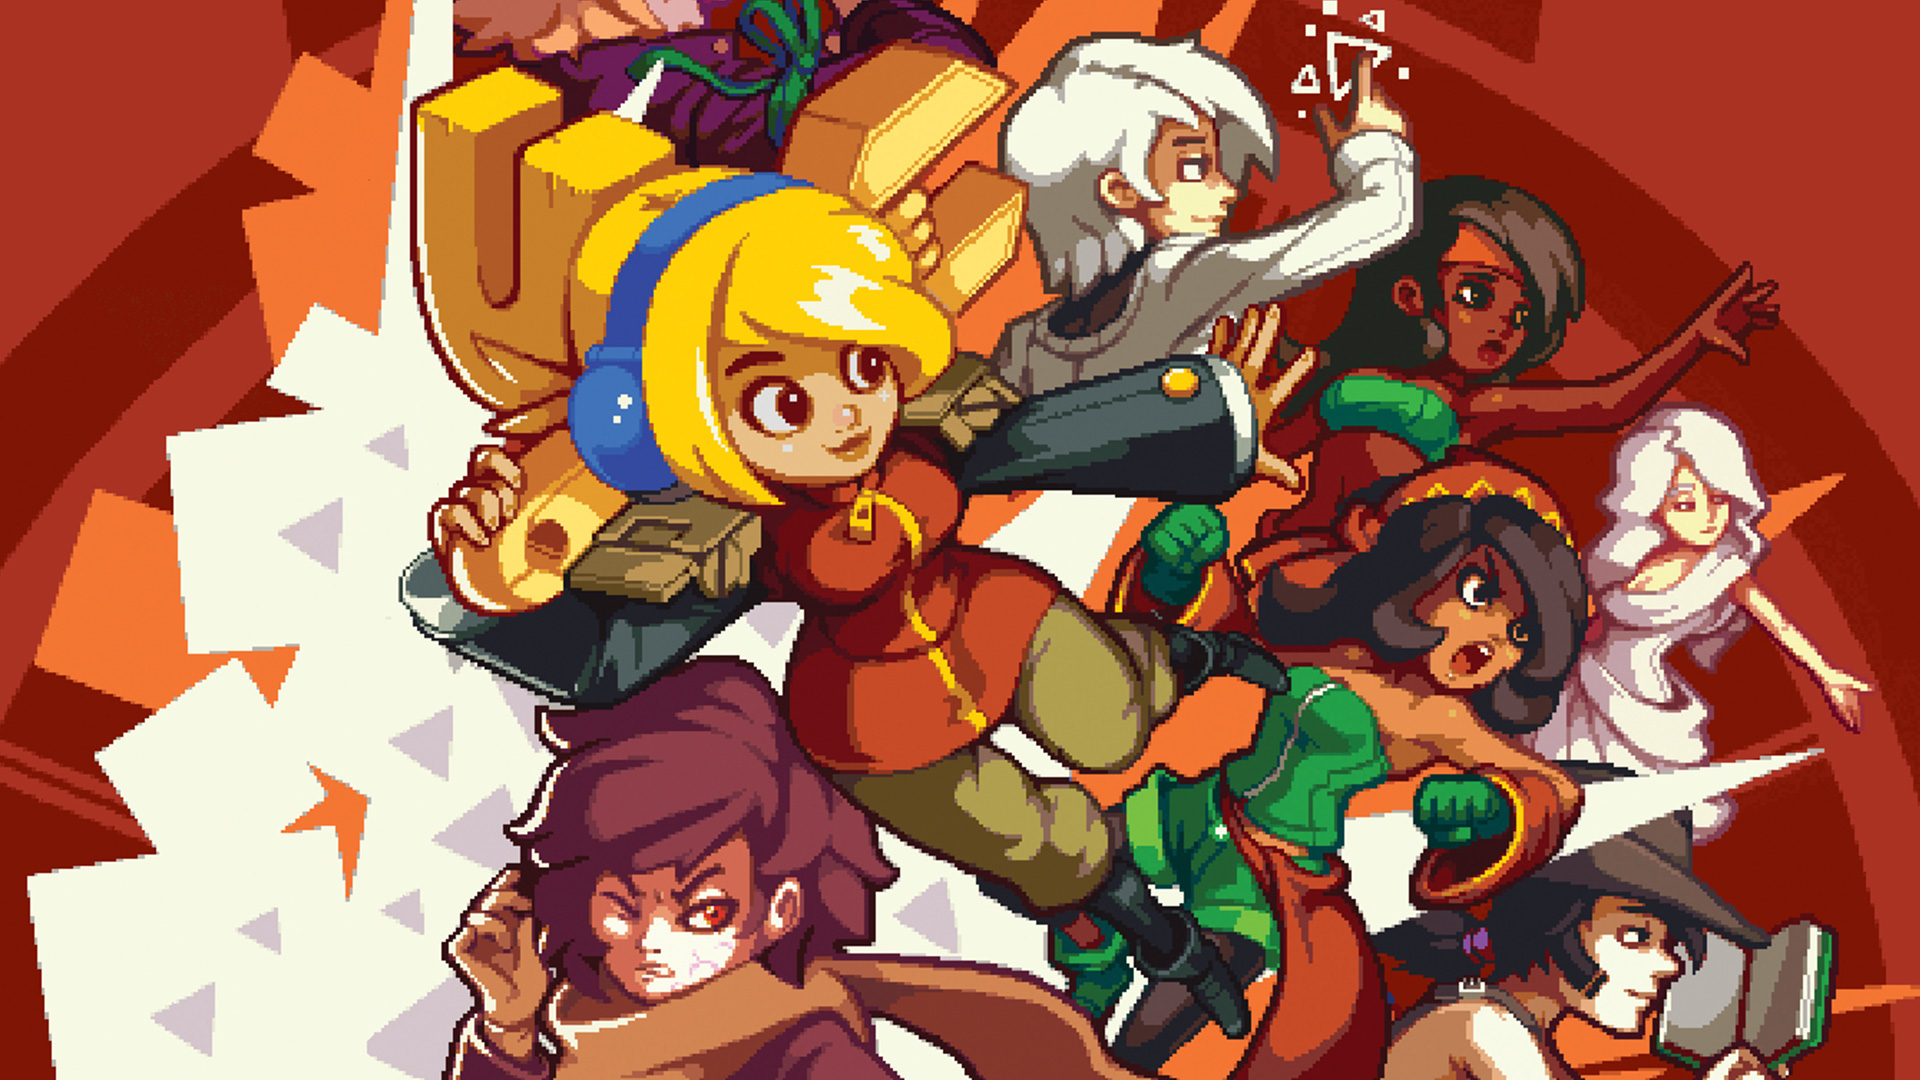 Iconoclasts on Switch left me with One Concern screenshot